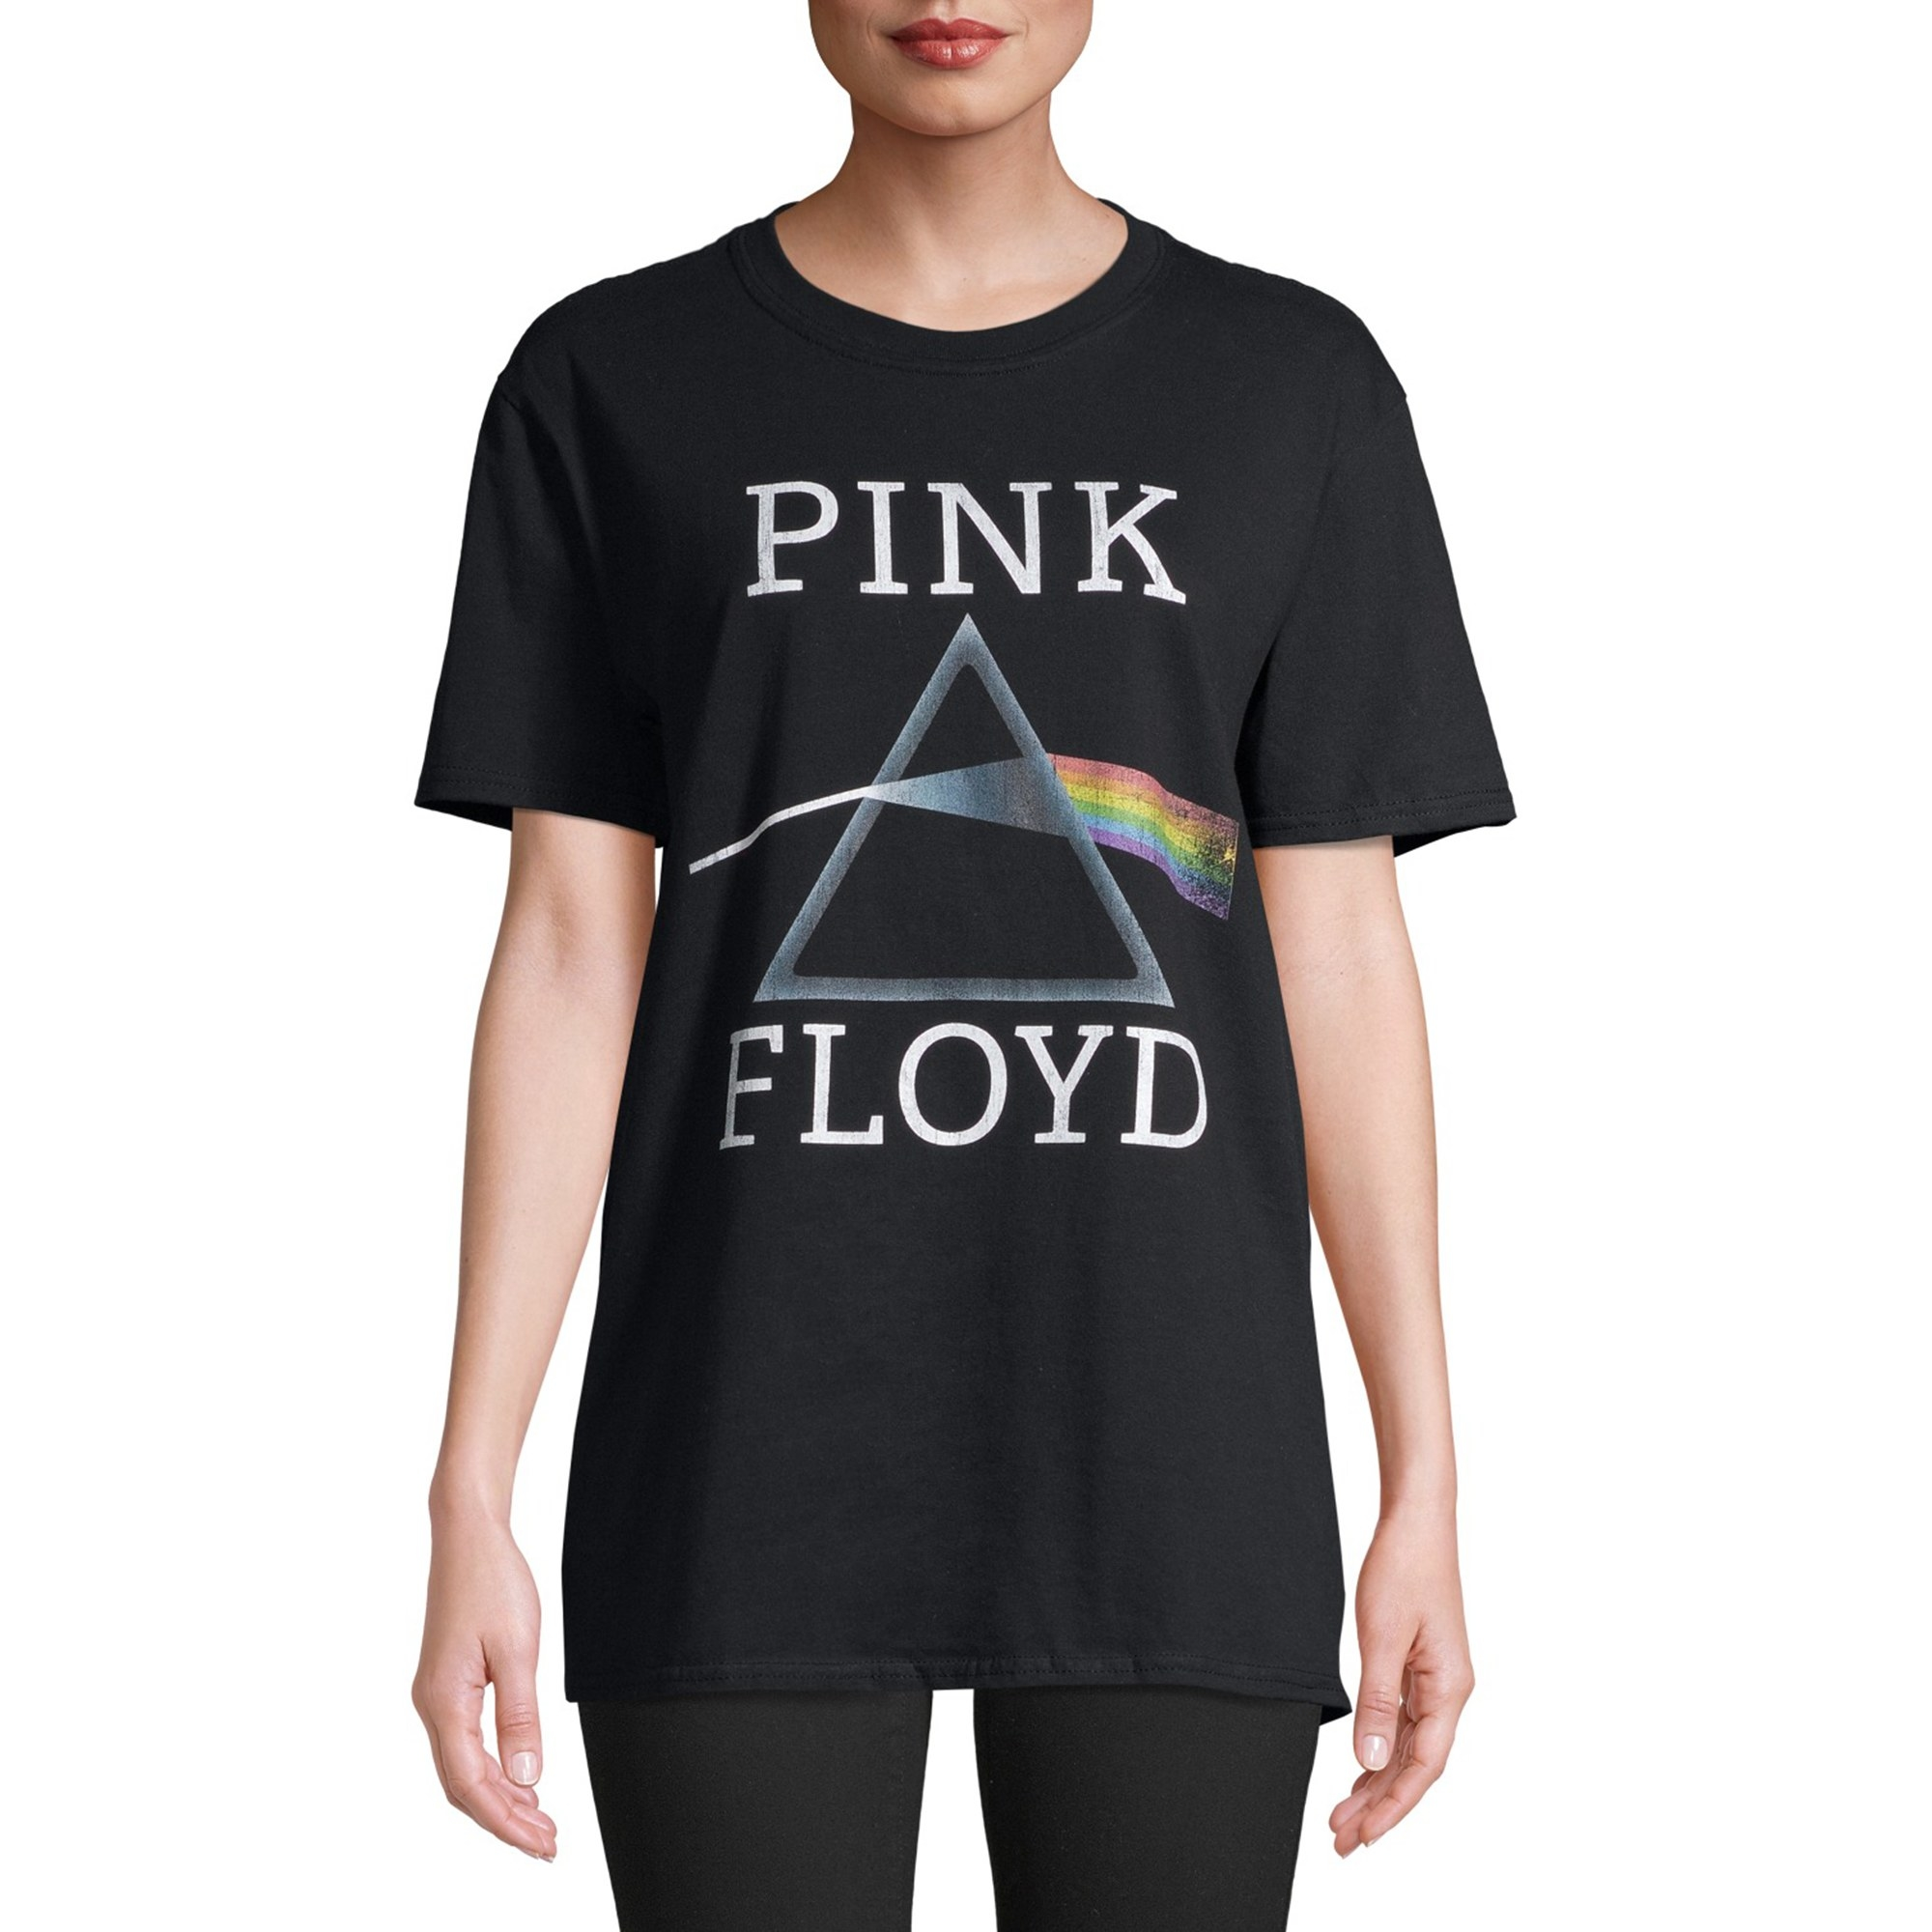 The Pink Floyd graphic T-shirt